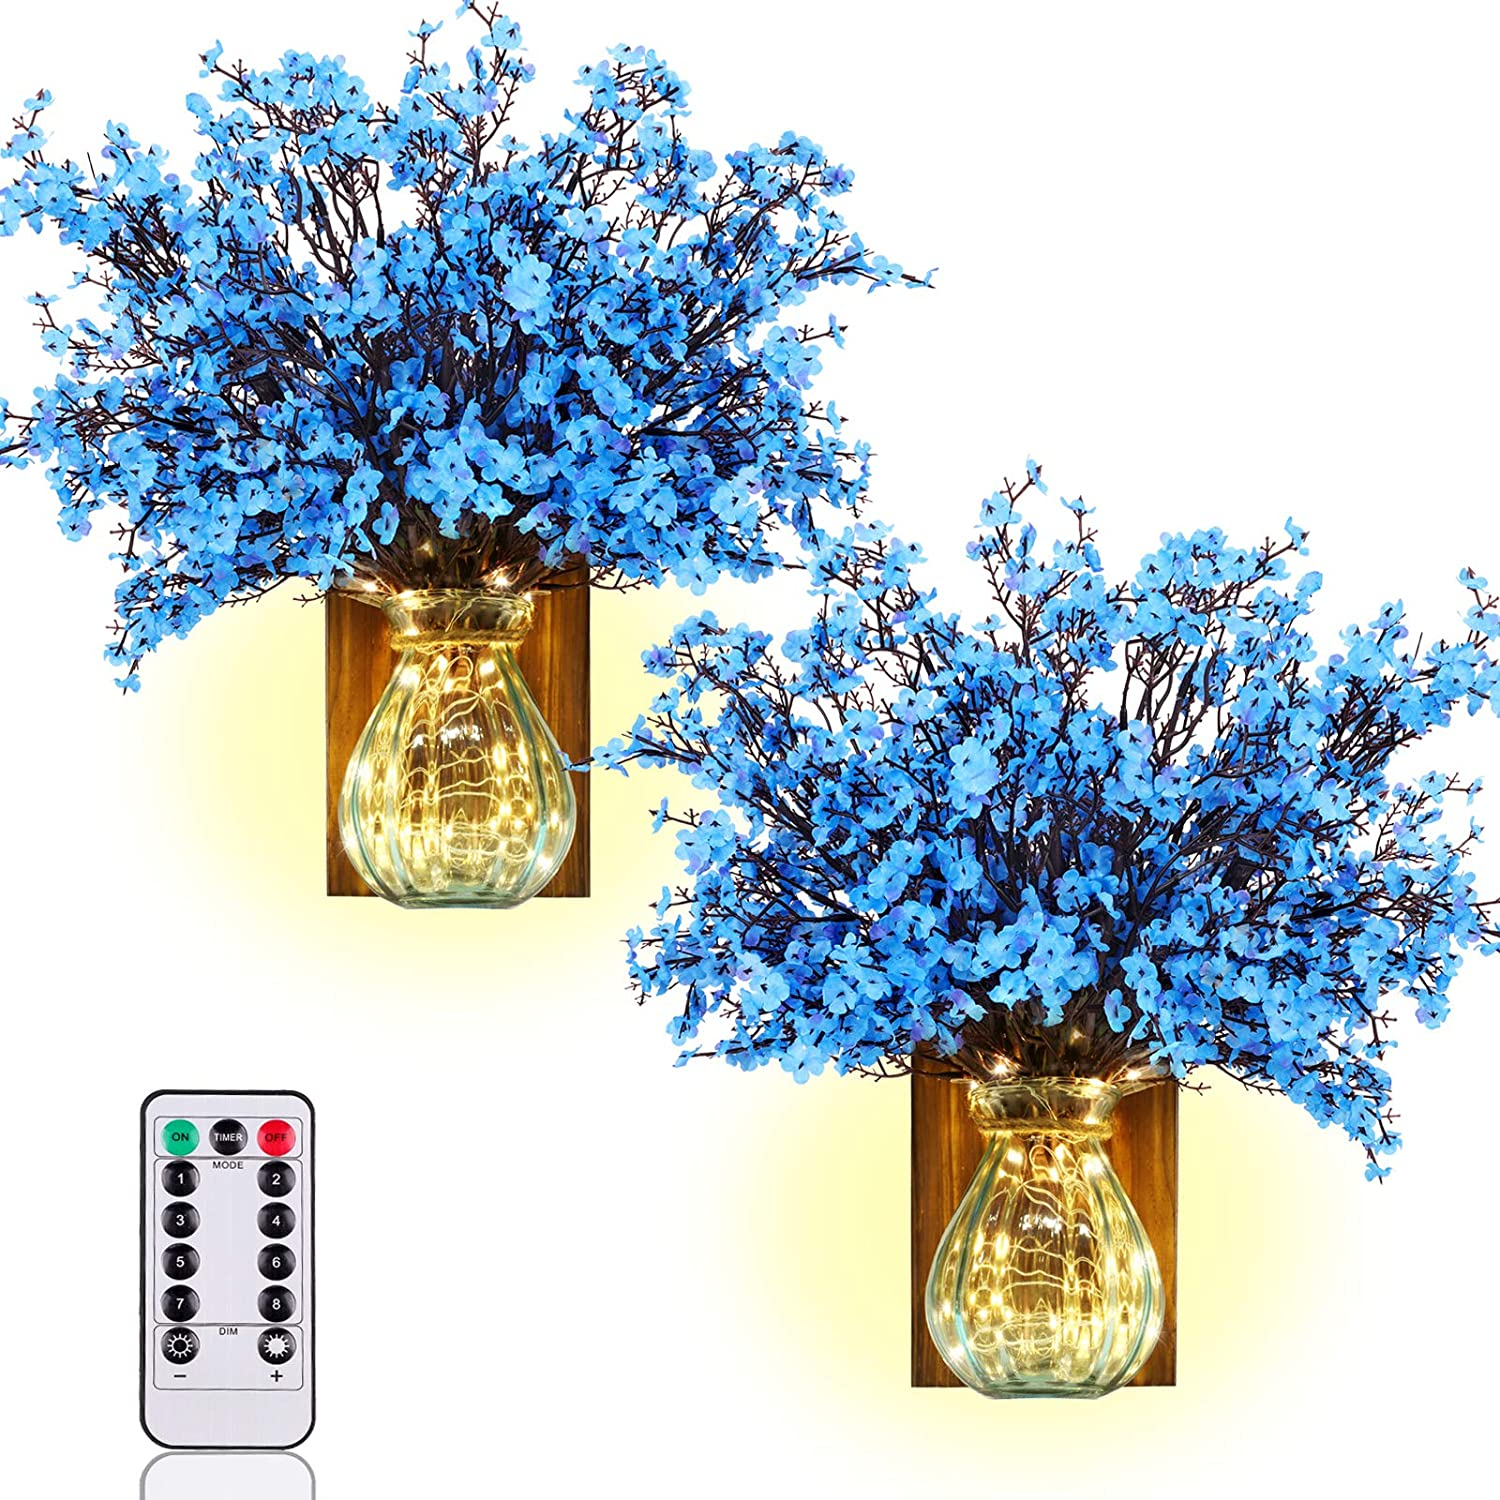 TianQin WY Artificial Flowers Handmade Wall Decor Hanging Design with LED Fairy Lights Living Decor (Blue)